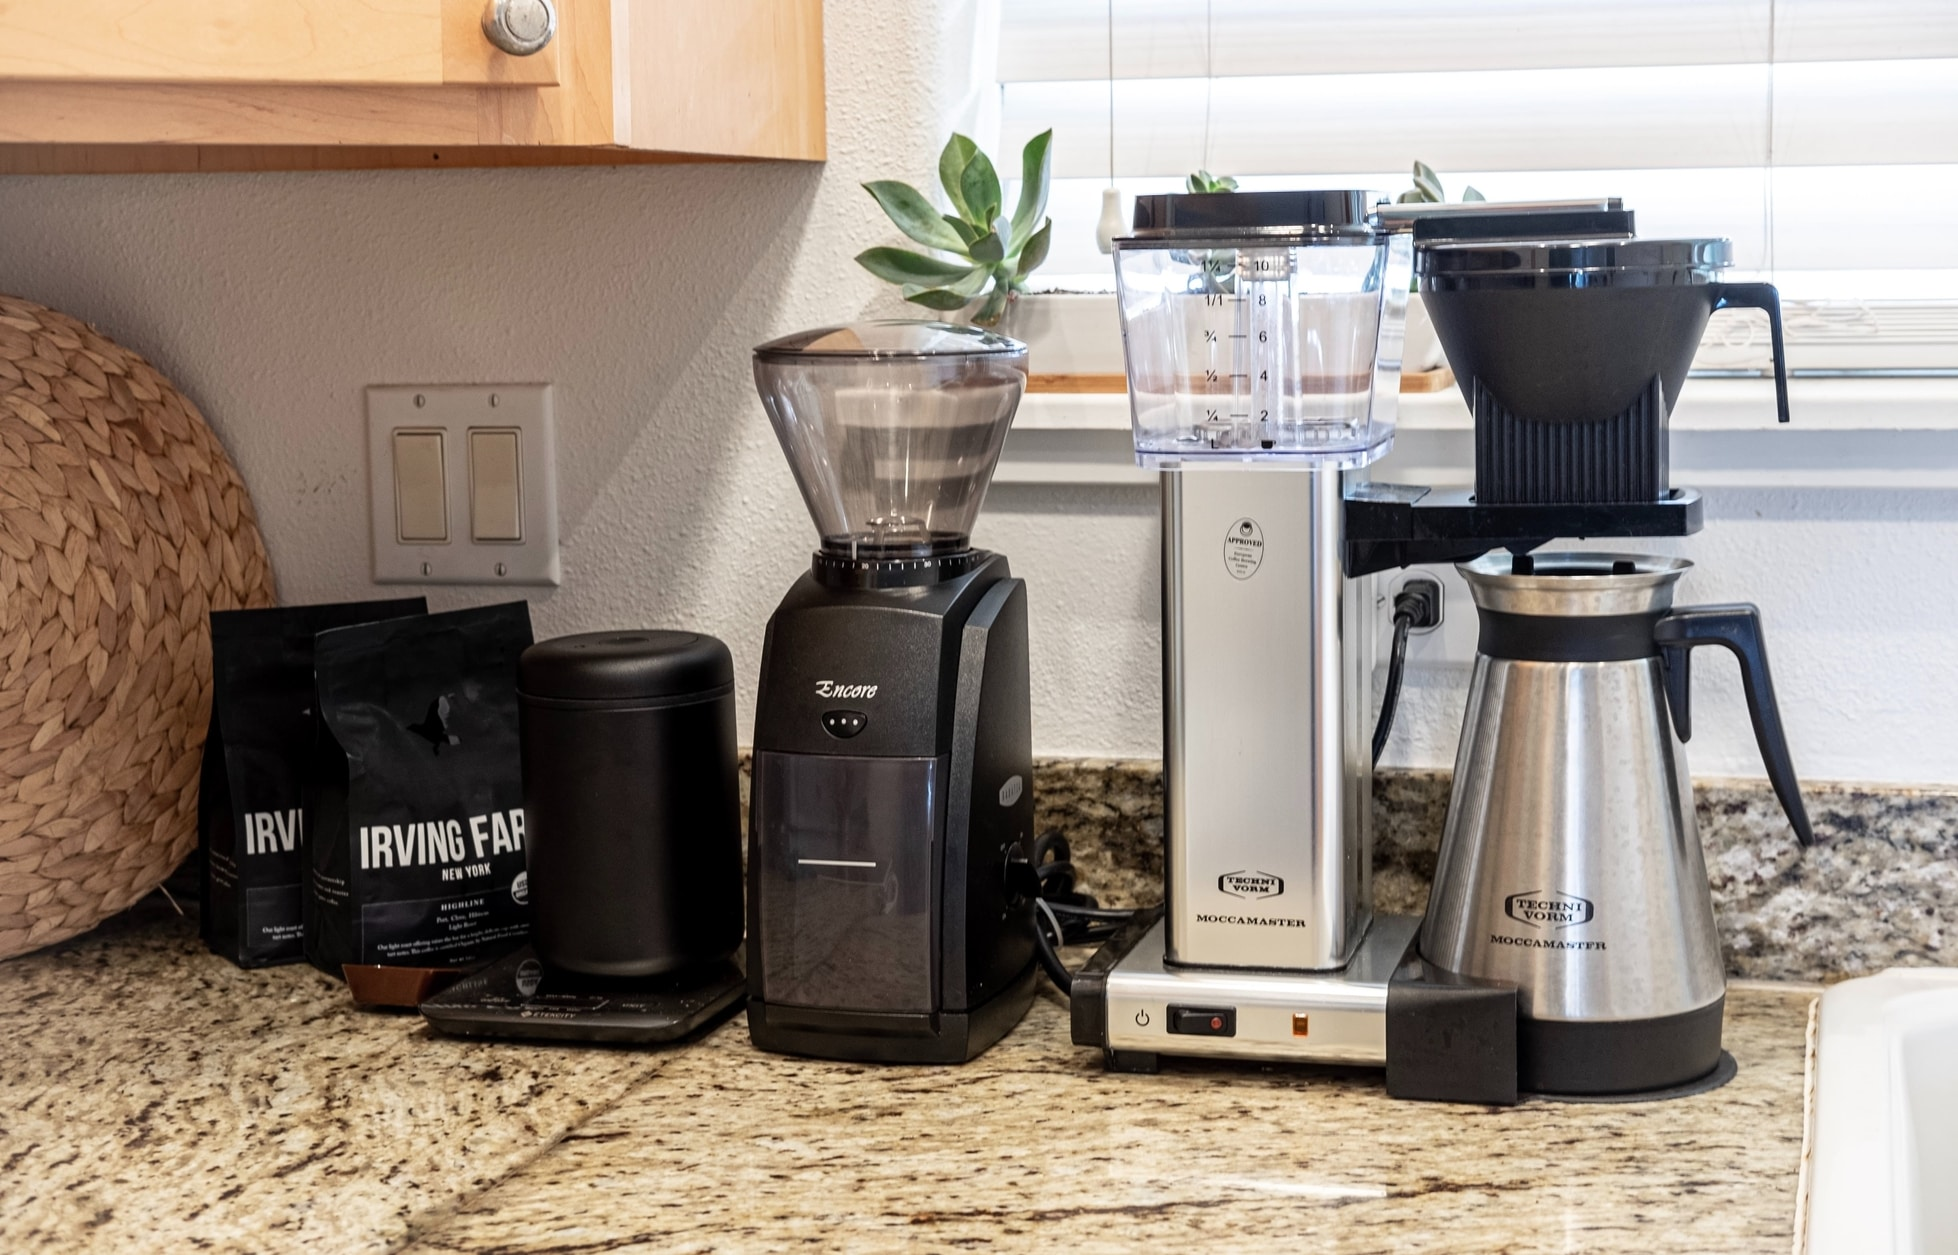 Top 5 Best Coffee Makers in 2021: Reviews & Buying Guide